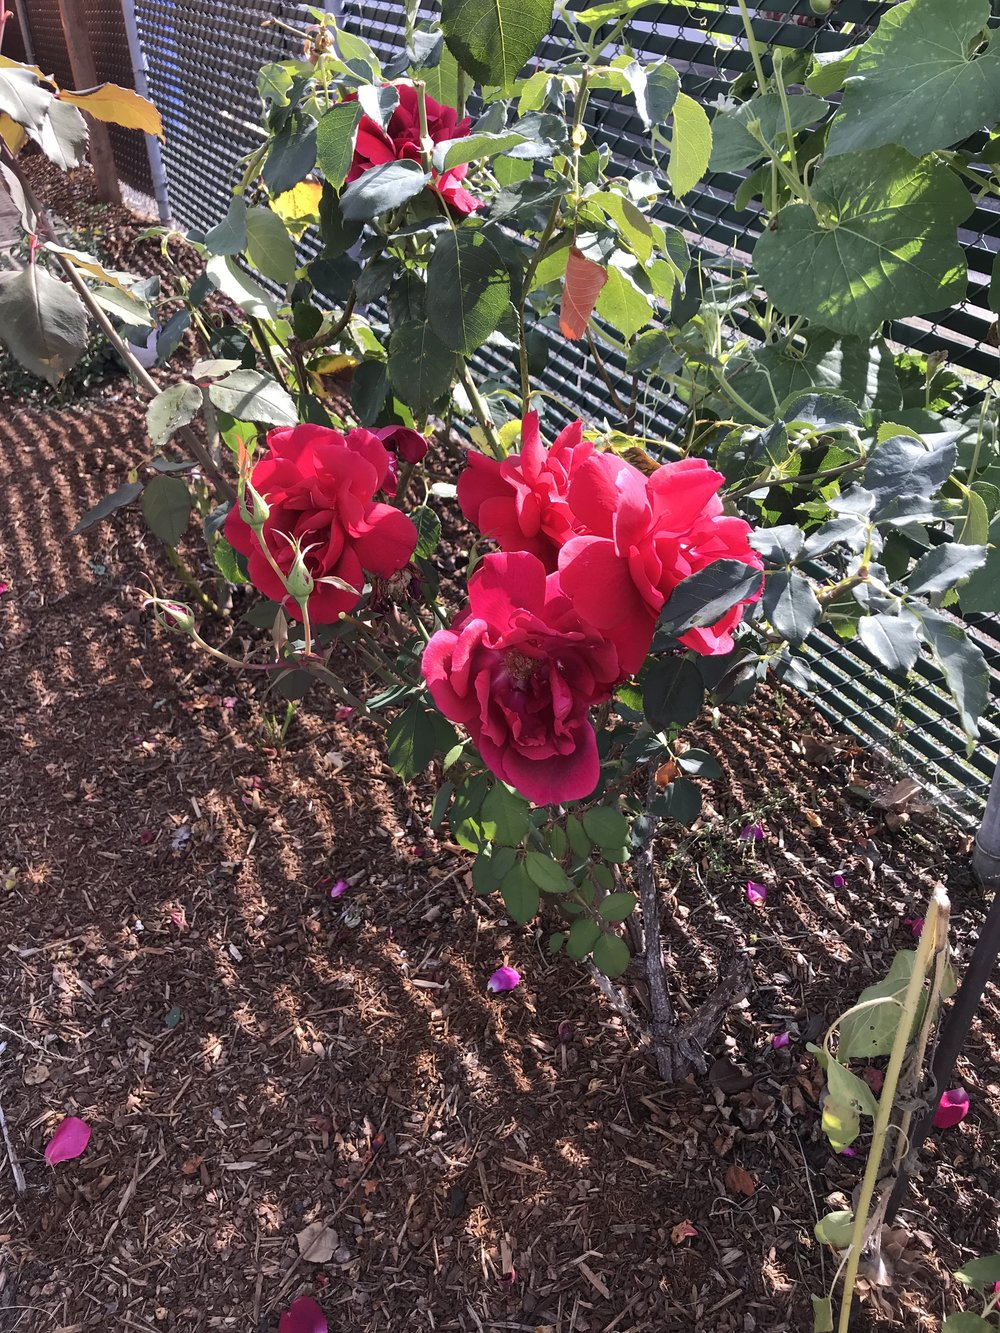 This rose bush is a California transplant, that made it's way to Oregon back in 2001